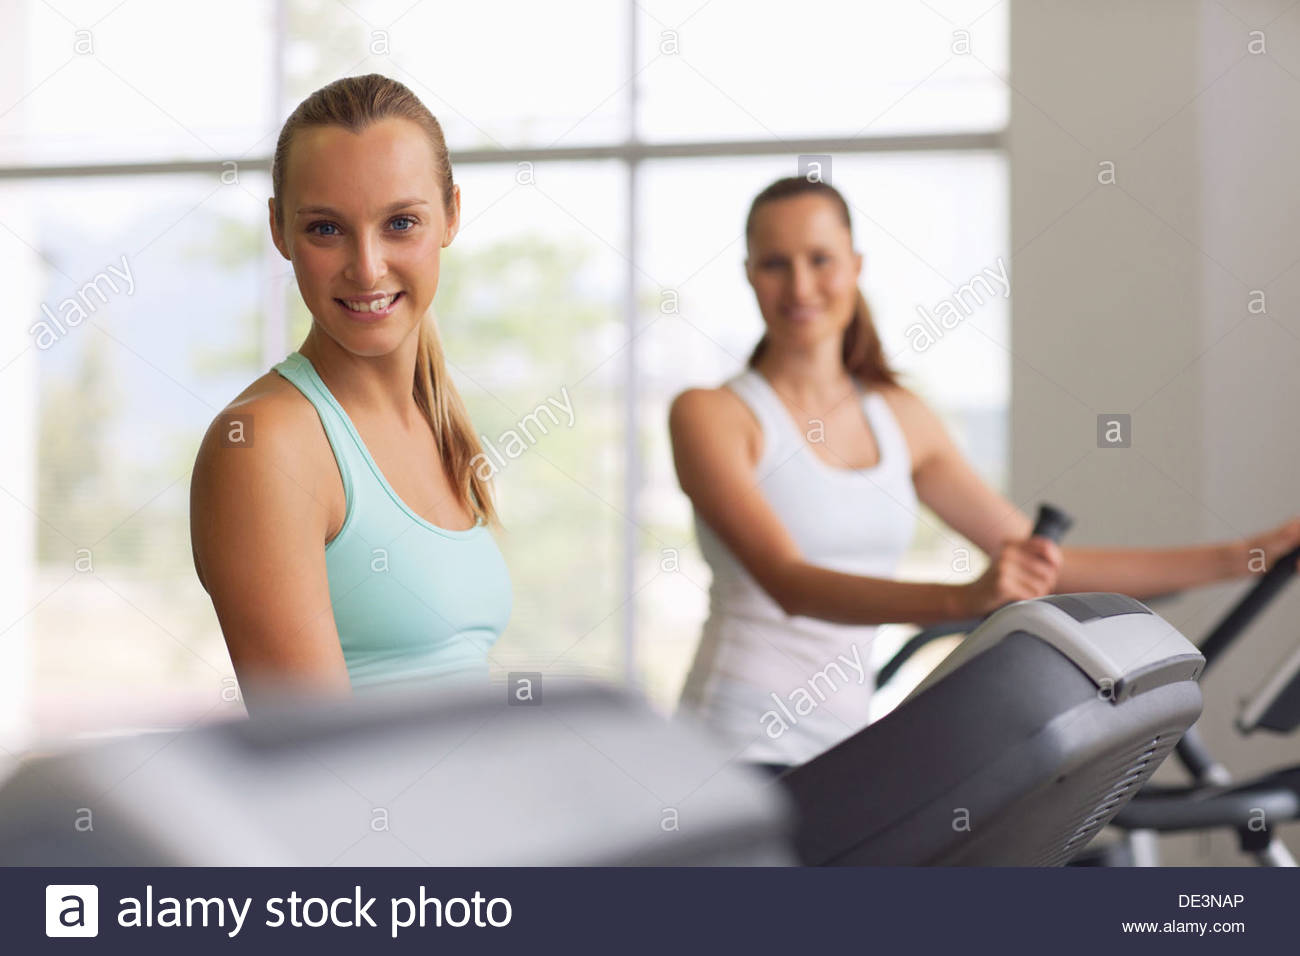 Two women working out in gym Stock Photo